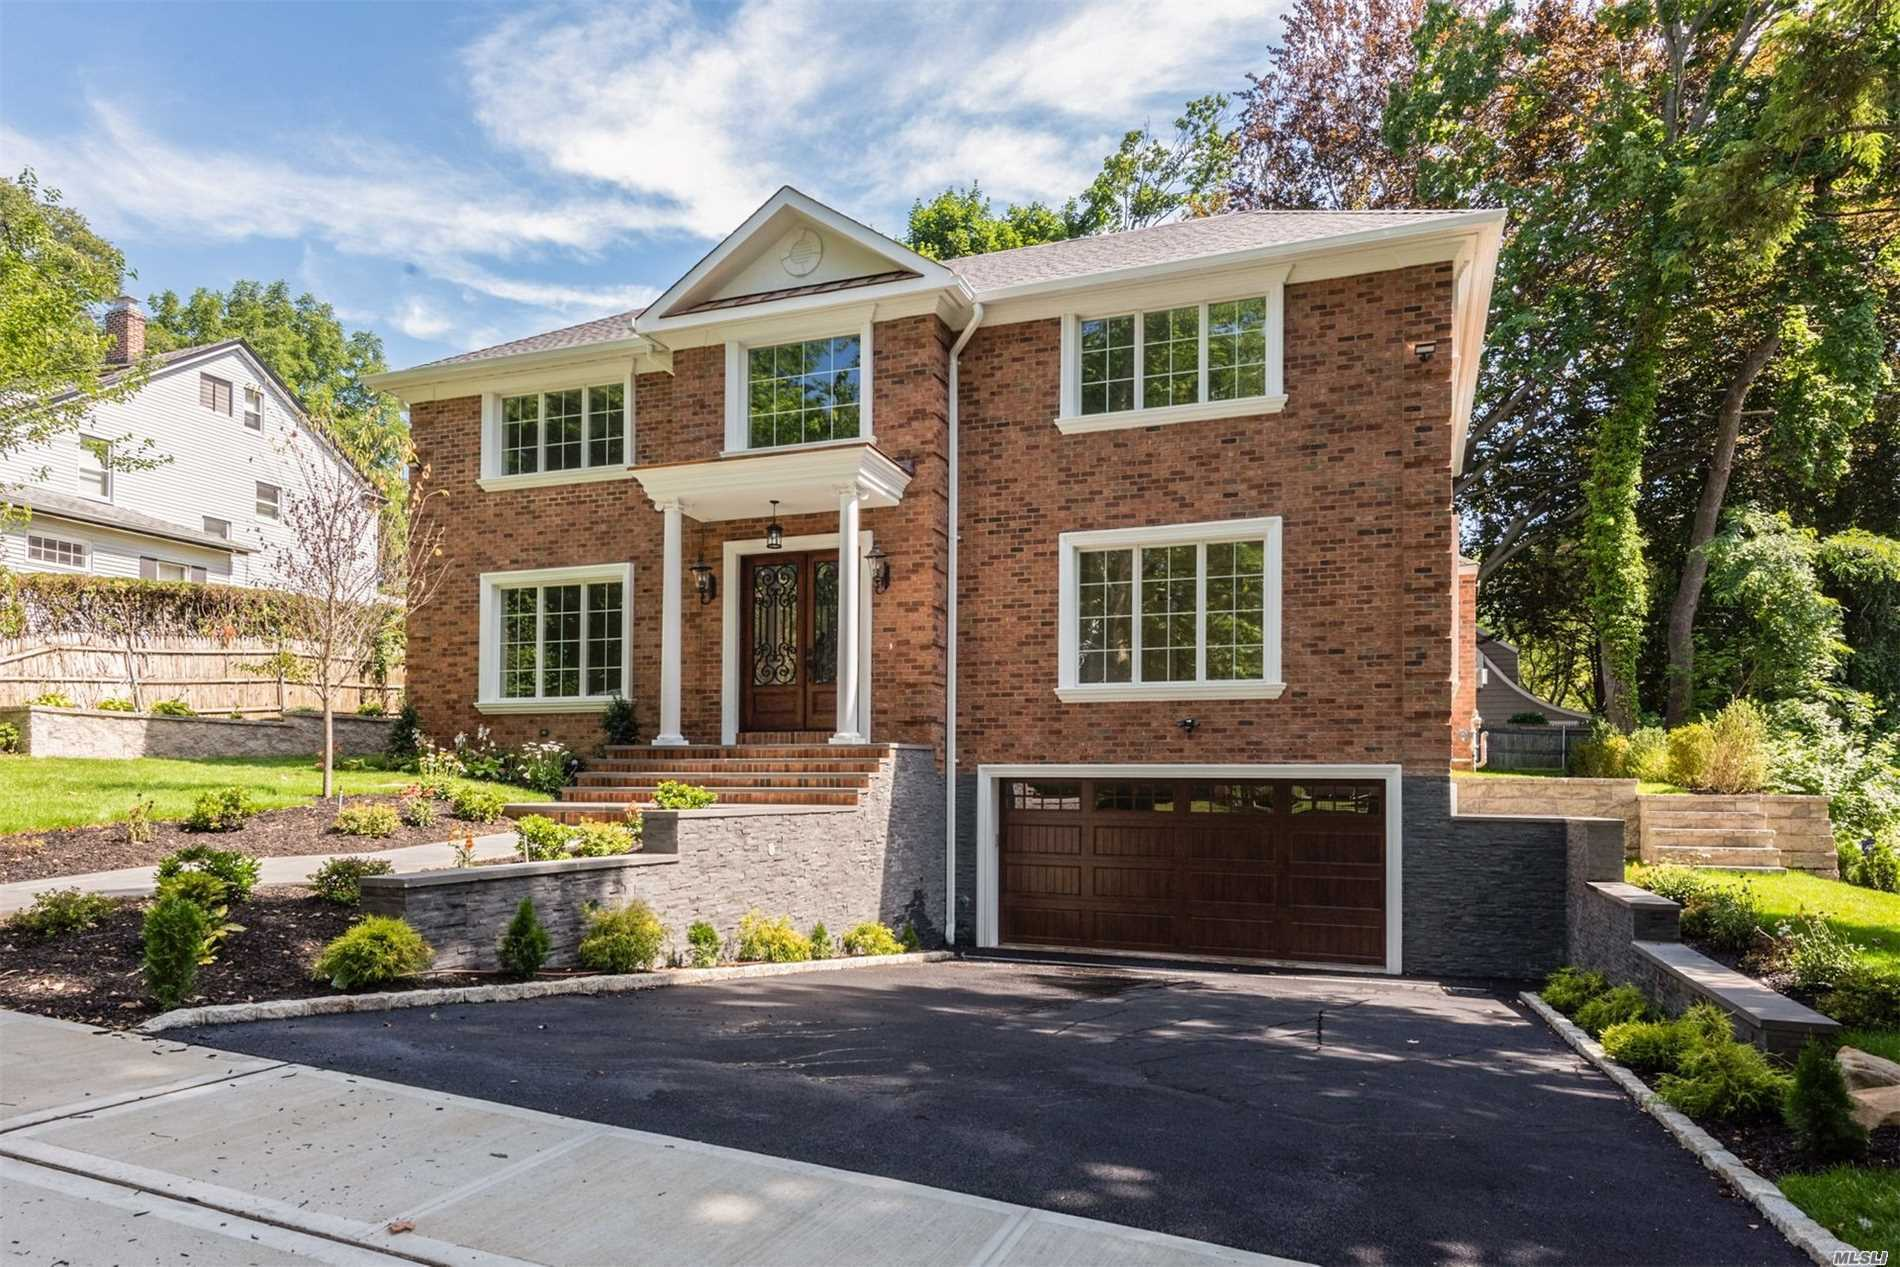 Magnificent New Construction, C/H Colonial Built With Superb Craftsmanship And Architectural Design. Excellent Home For Entertaining & Family Living. 10 Ft Ceilings, Double Story Family Room, Elegant Wood Floors, , Chef's Eat-In-Kitchen With Top Of The Line Appliances, Full Finished Basement, Radiant Heat In Foyer, Kitchen And Bathrooms, Central Vac, Alarm, Ready For Camera Surveillance, Energy Star Home. Saddle Rock Elementary And South Middle And High Schools. Only 3 Blocks To Lirr